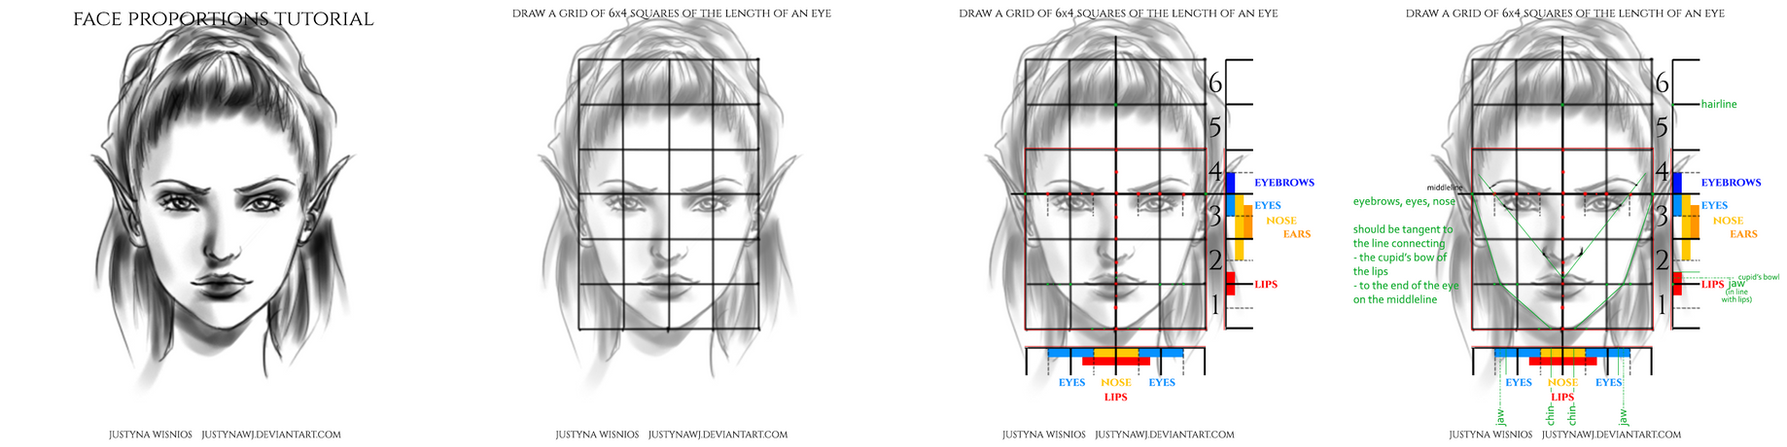 face proportions tutorial female by justynawj on deviantart